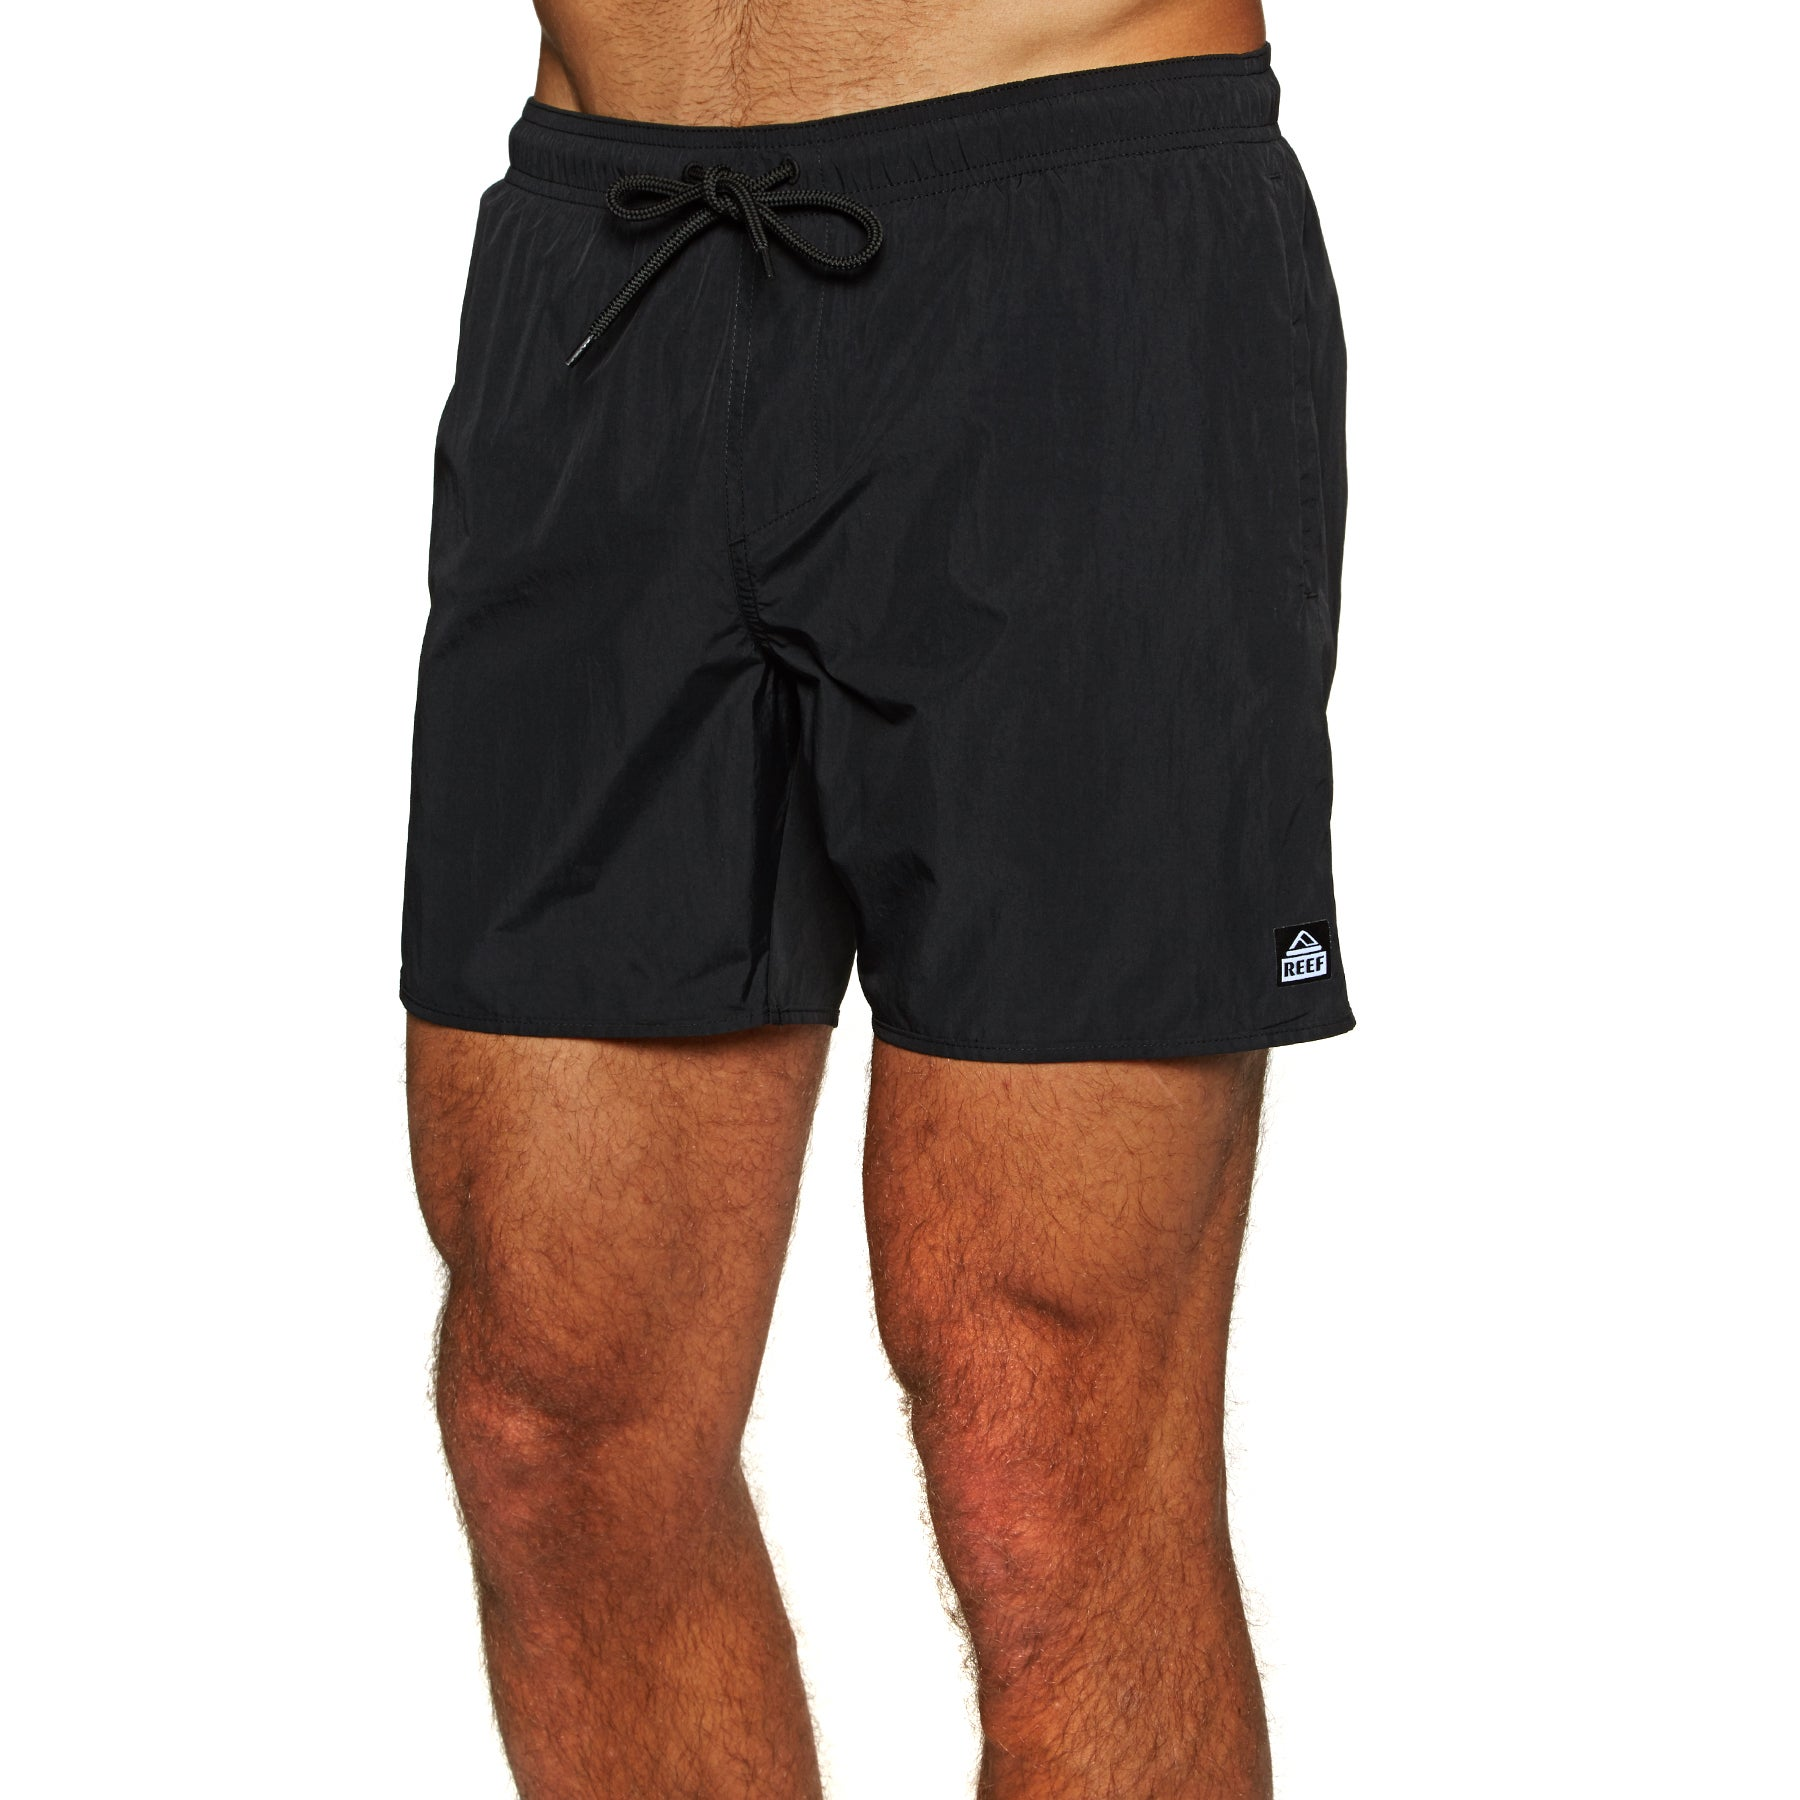 Boardshort Reef Emea Volley - Black